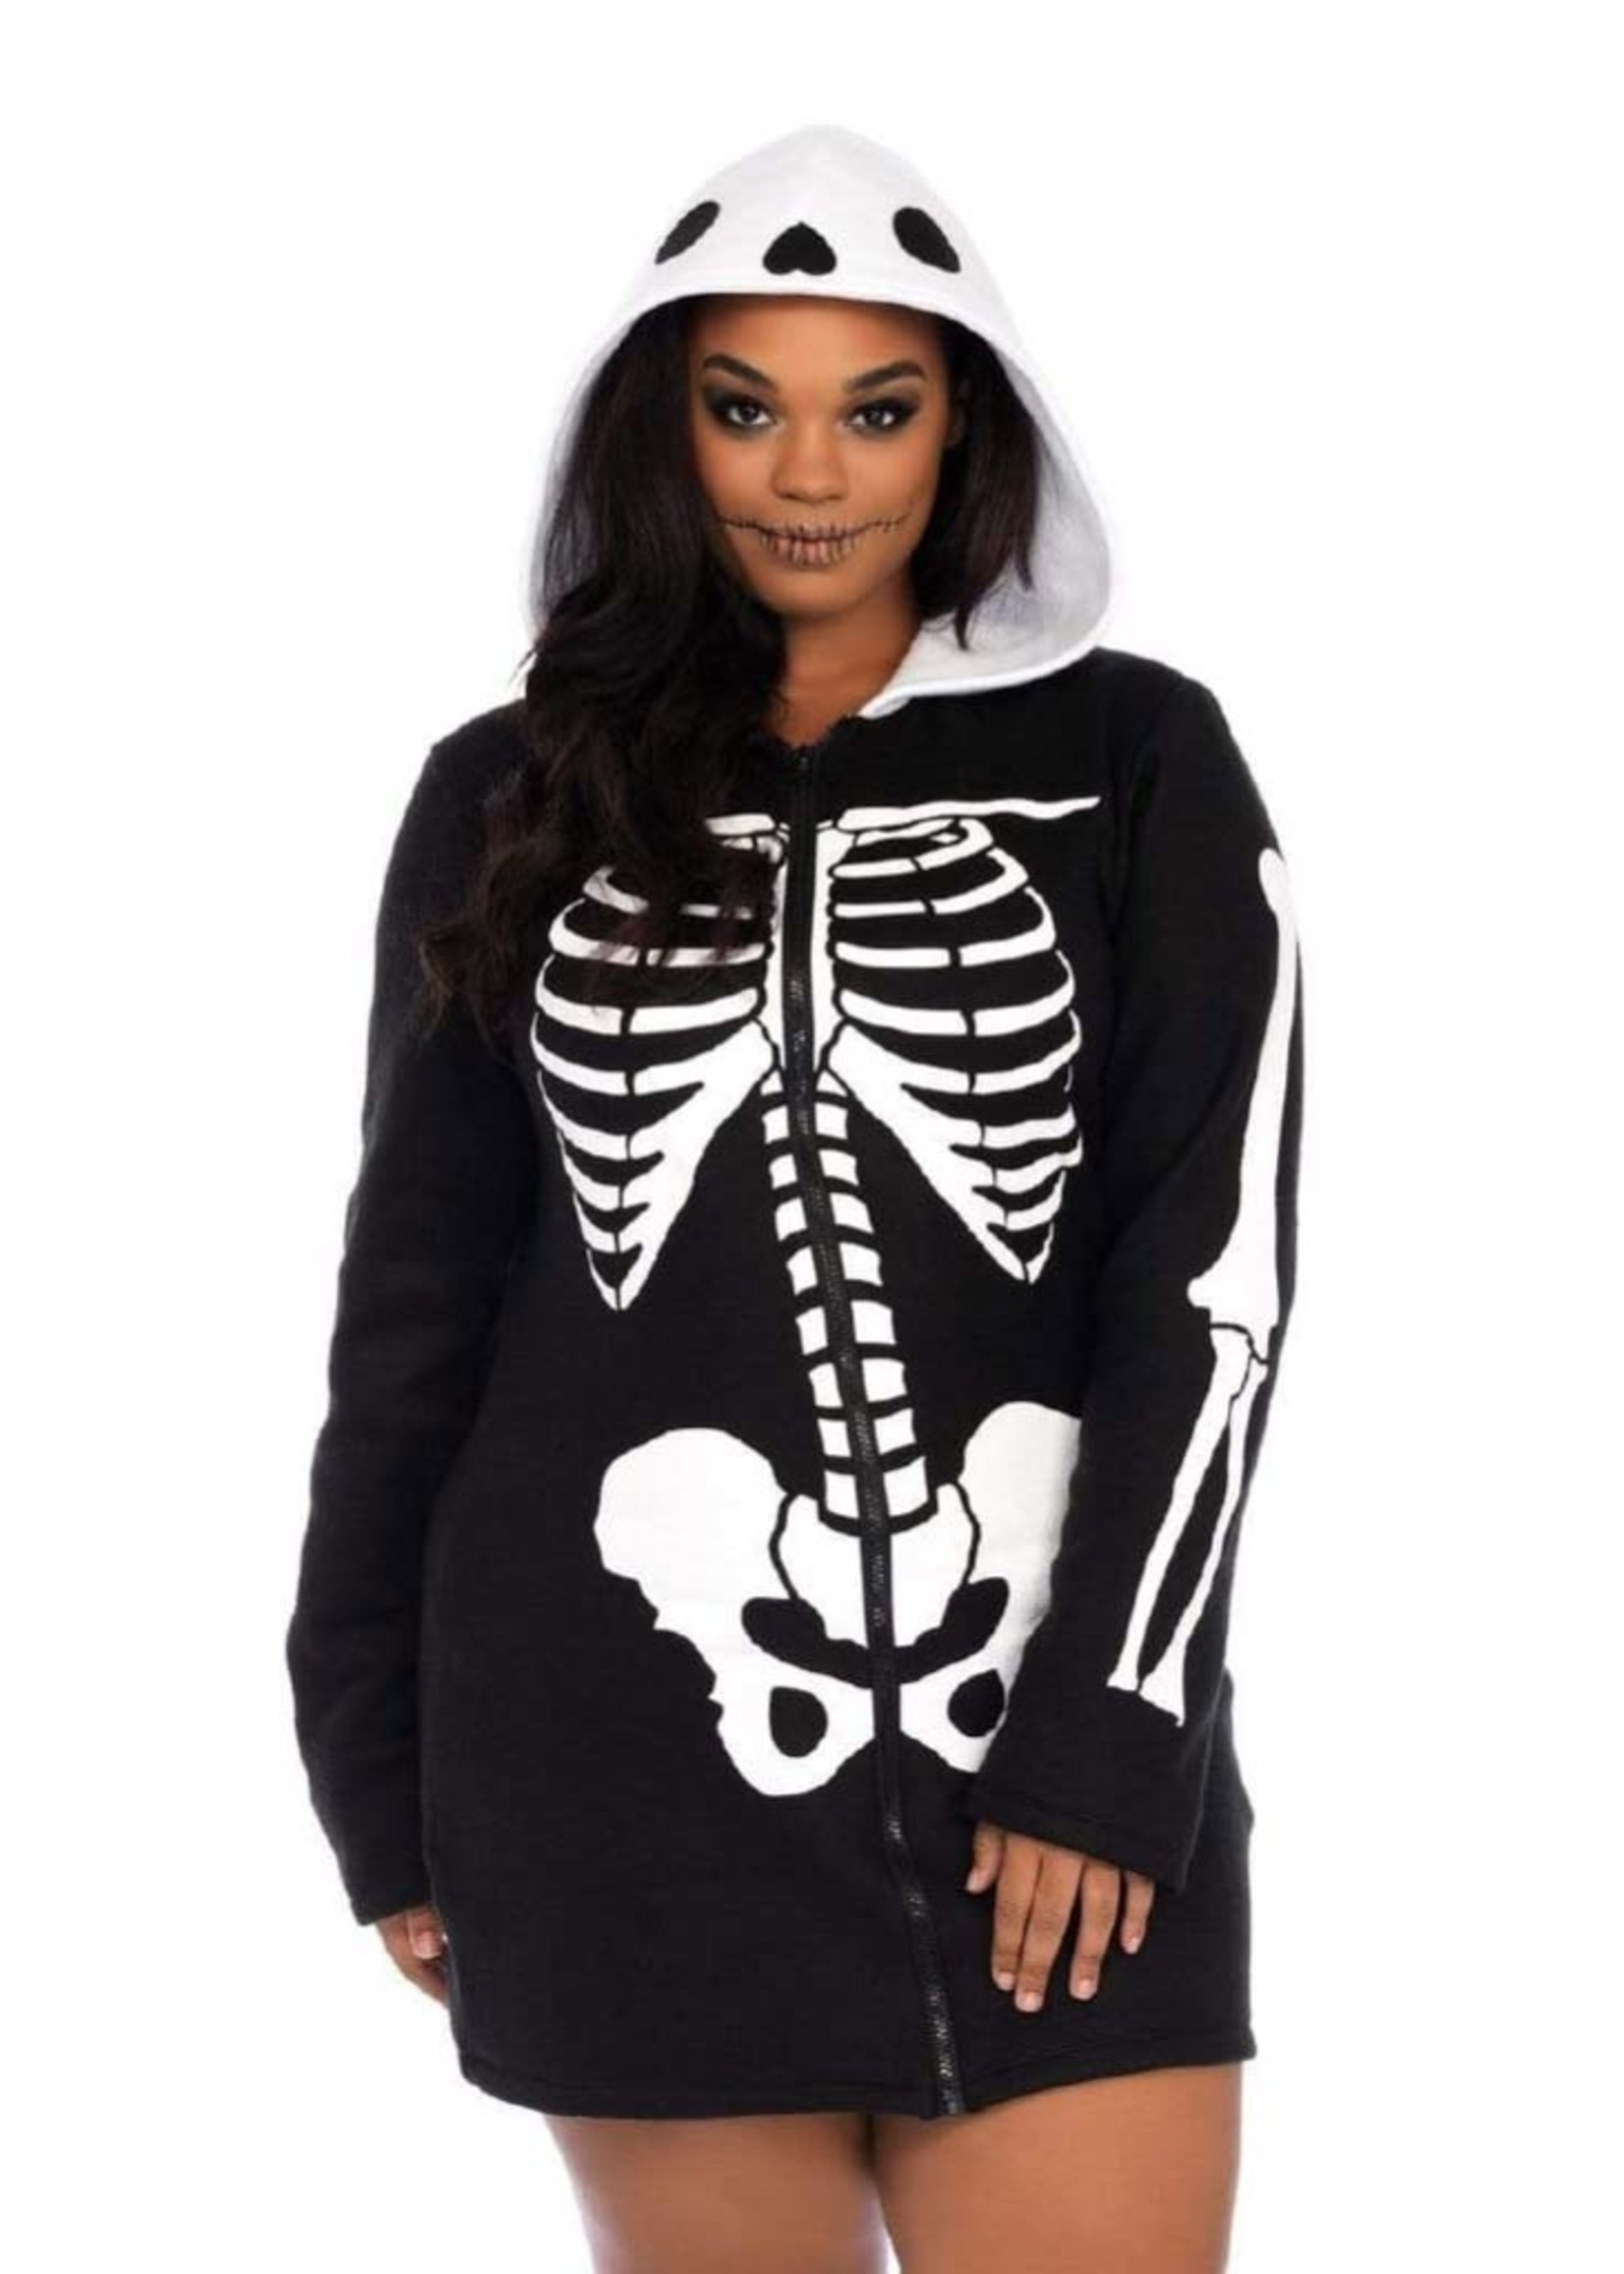 LEG AVENUE Cozy Skeleton - Women's